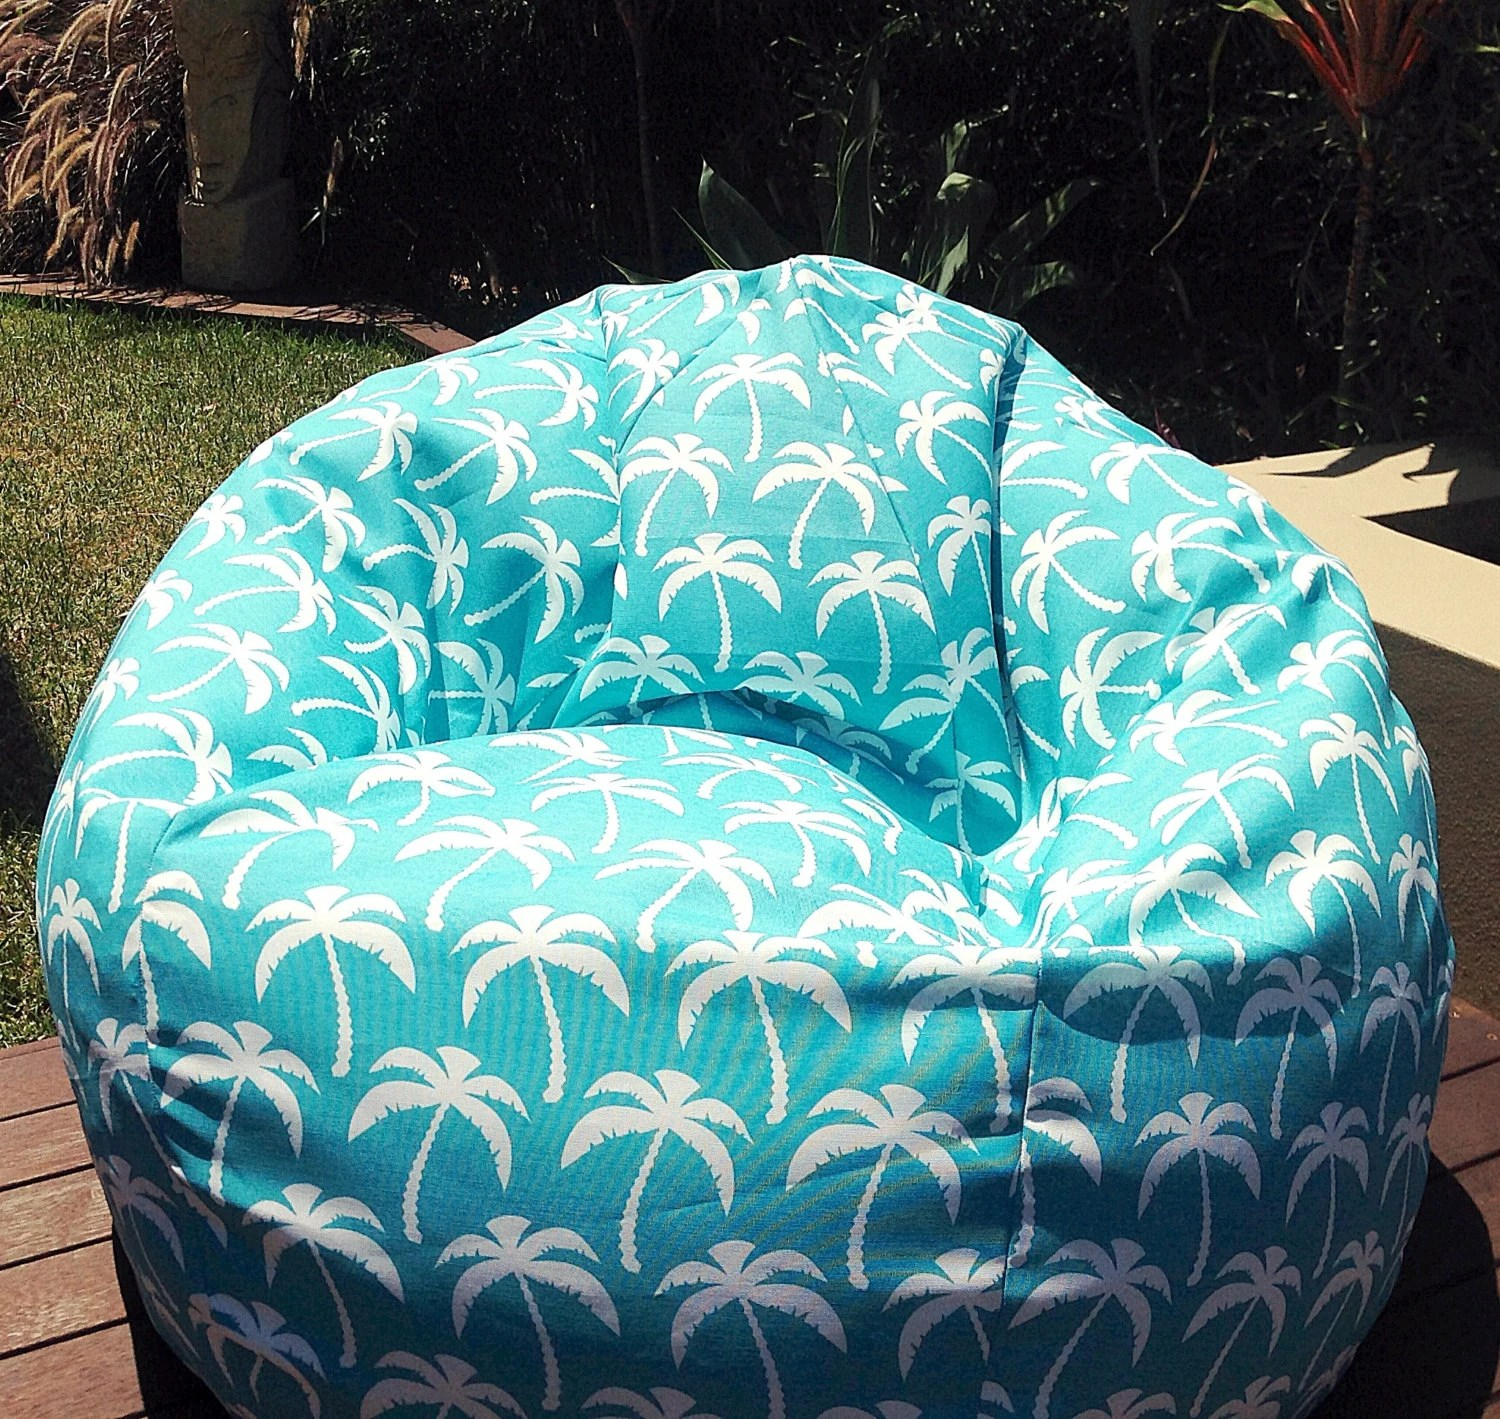 Cool Bean Bag Chairs Outdoor Bean Bag Palm Springs Turquoise Cool Funky Retro